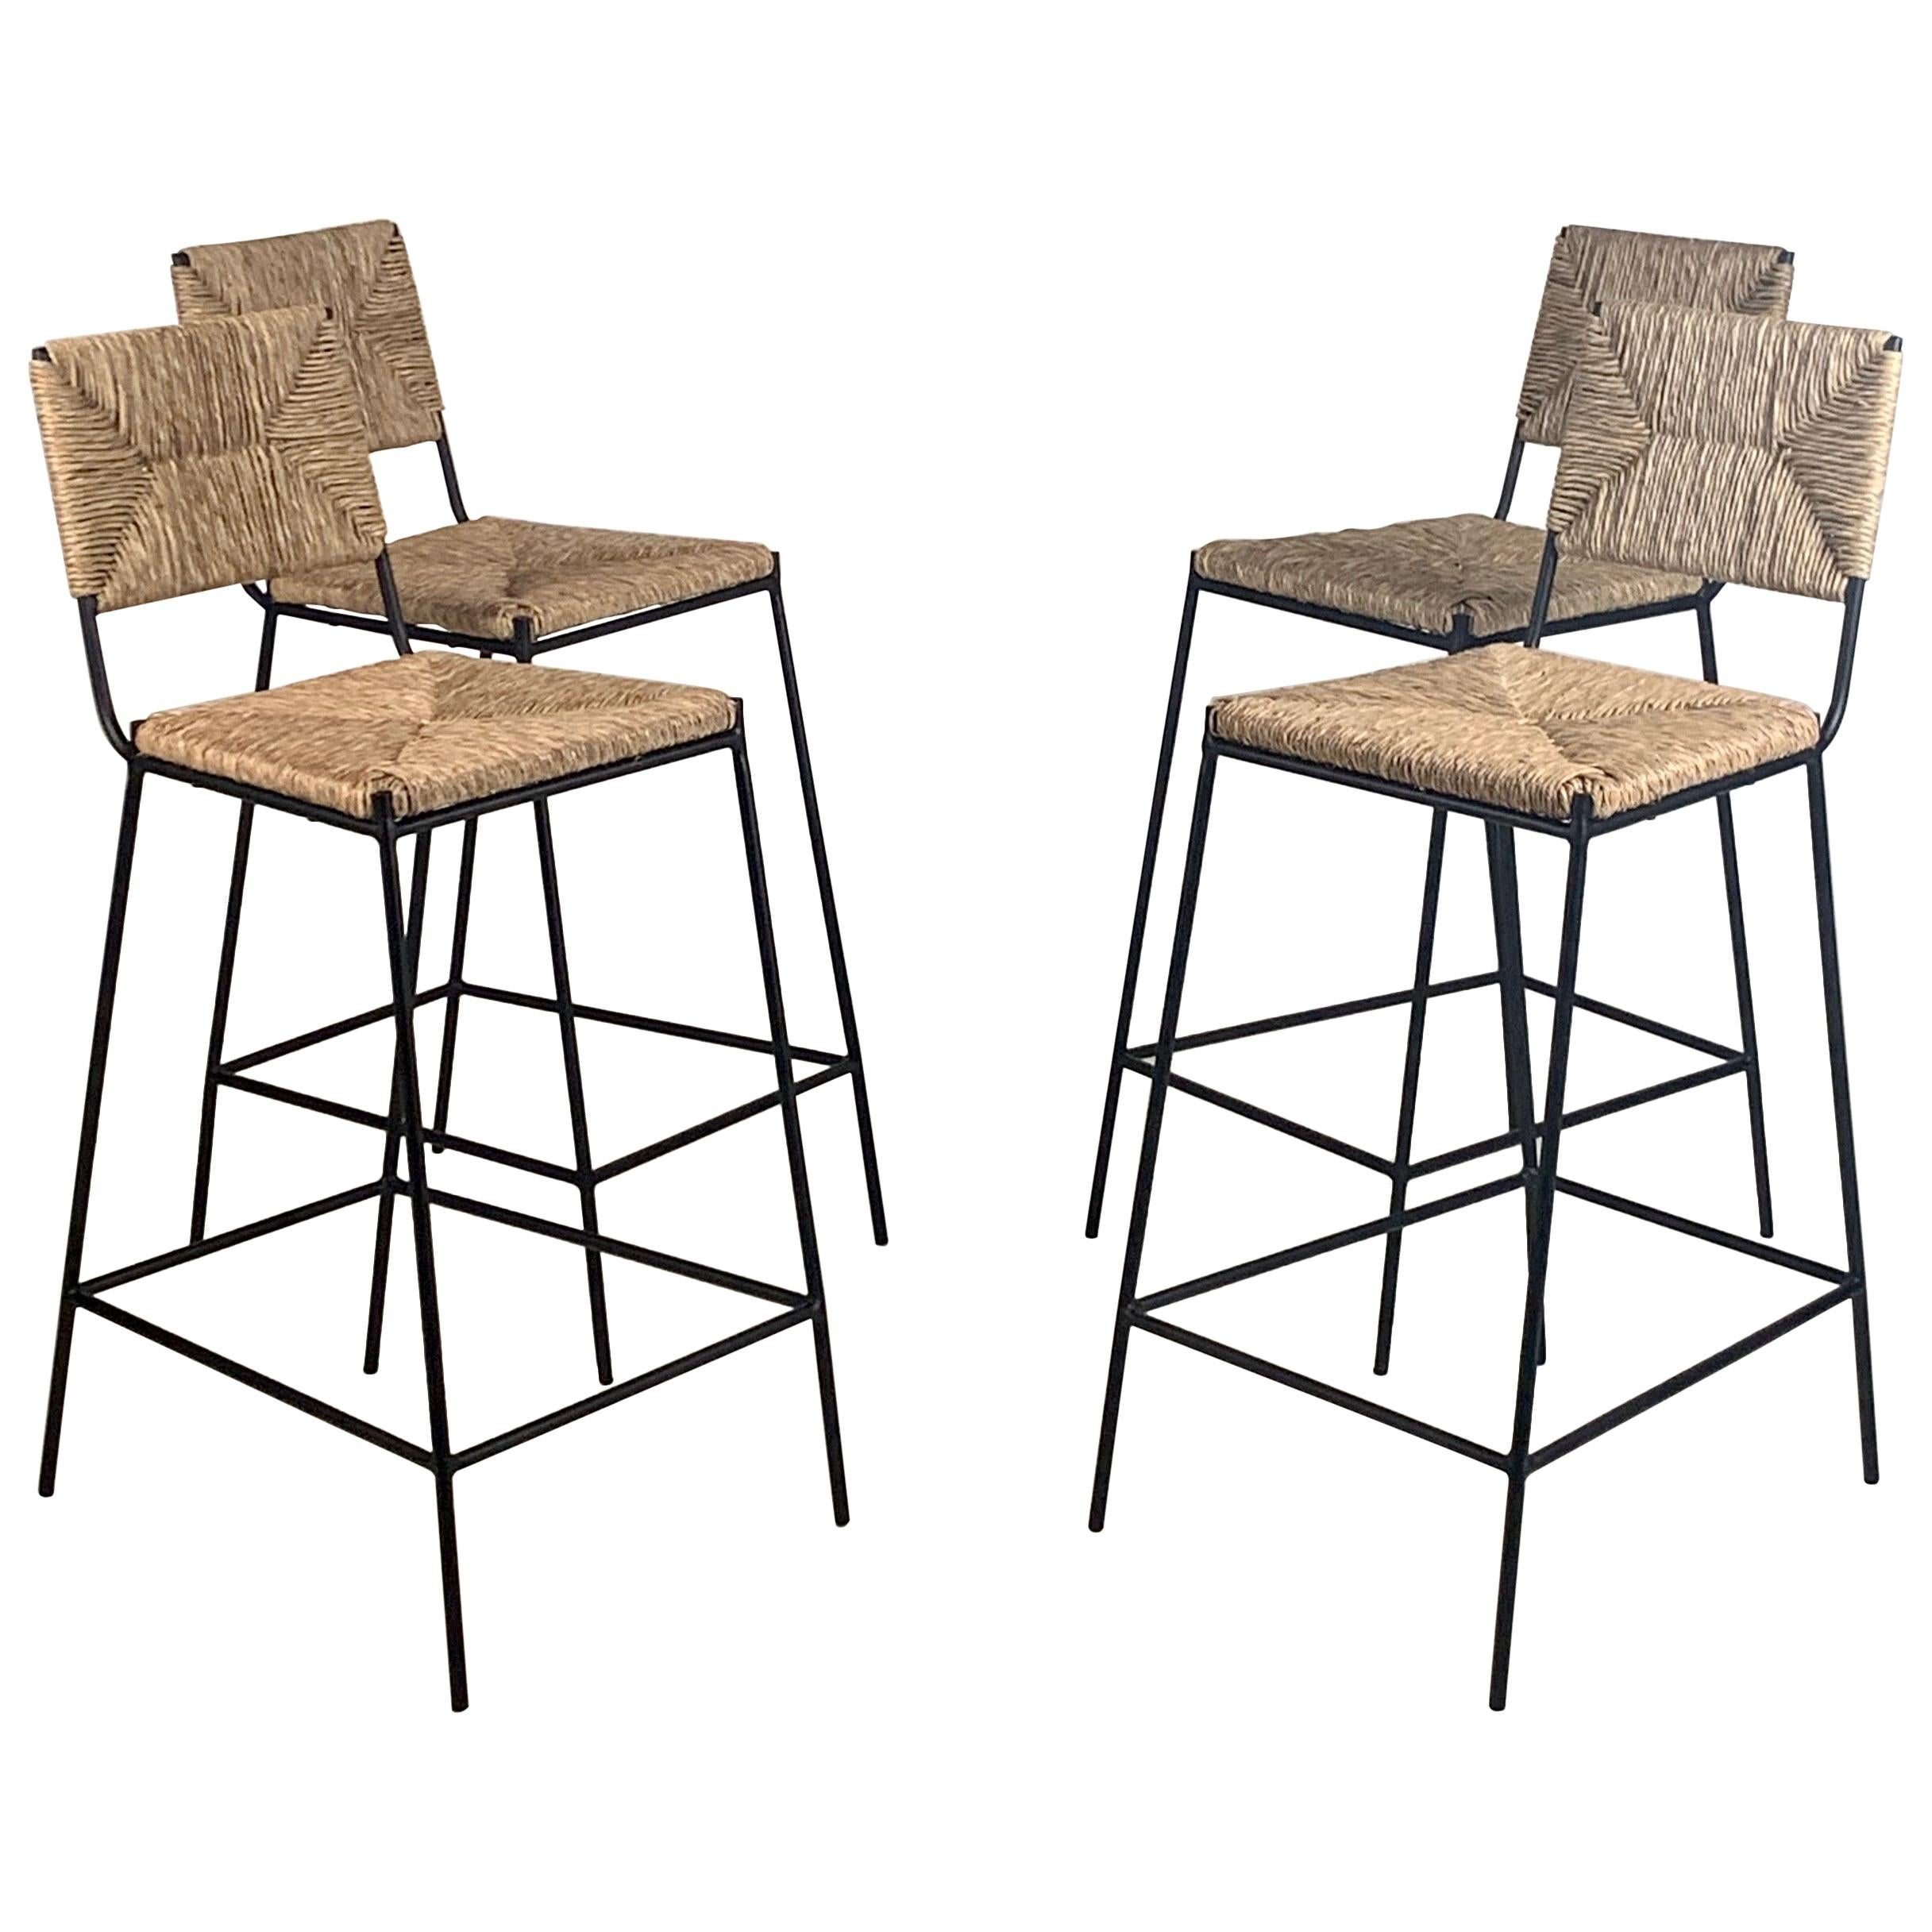 Set of 4 'Campagne' Counter Height Stools by Design Frères